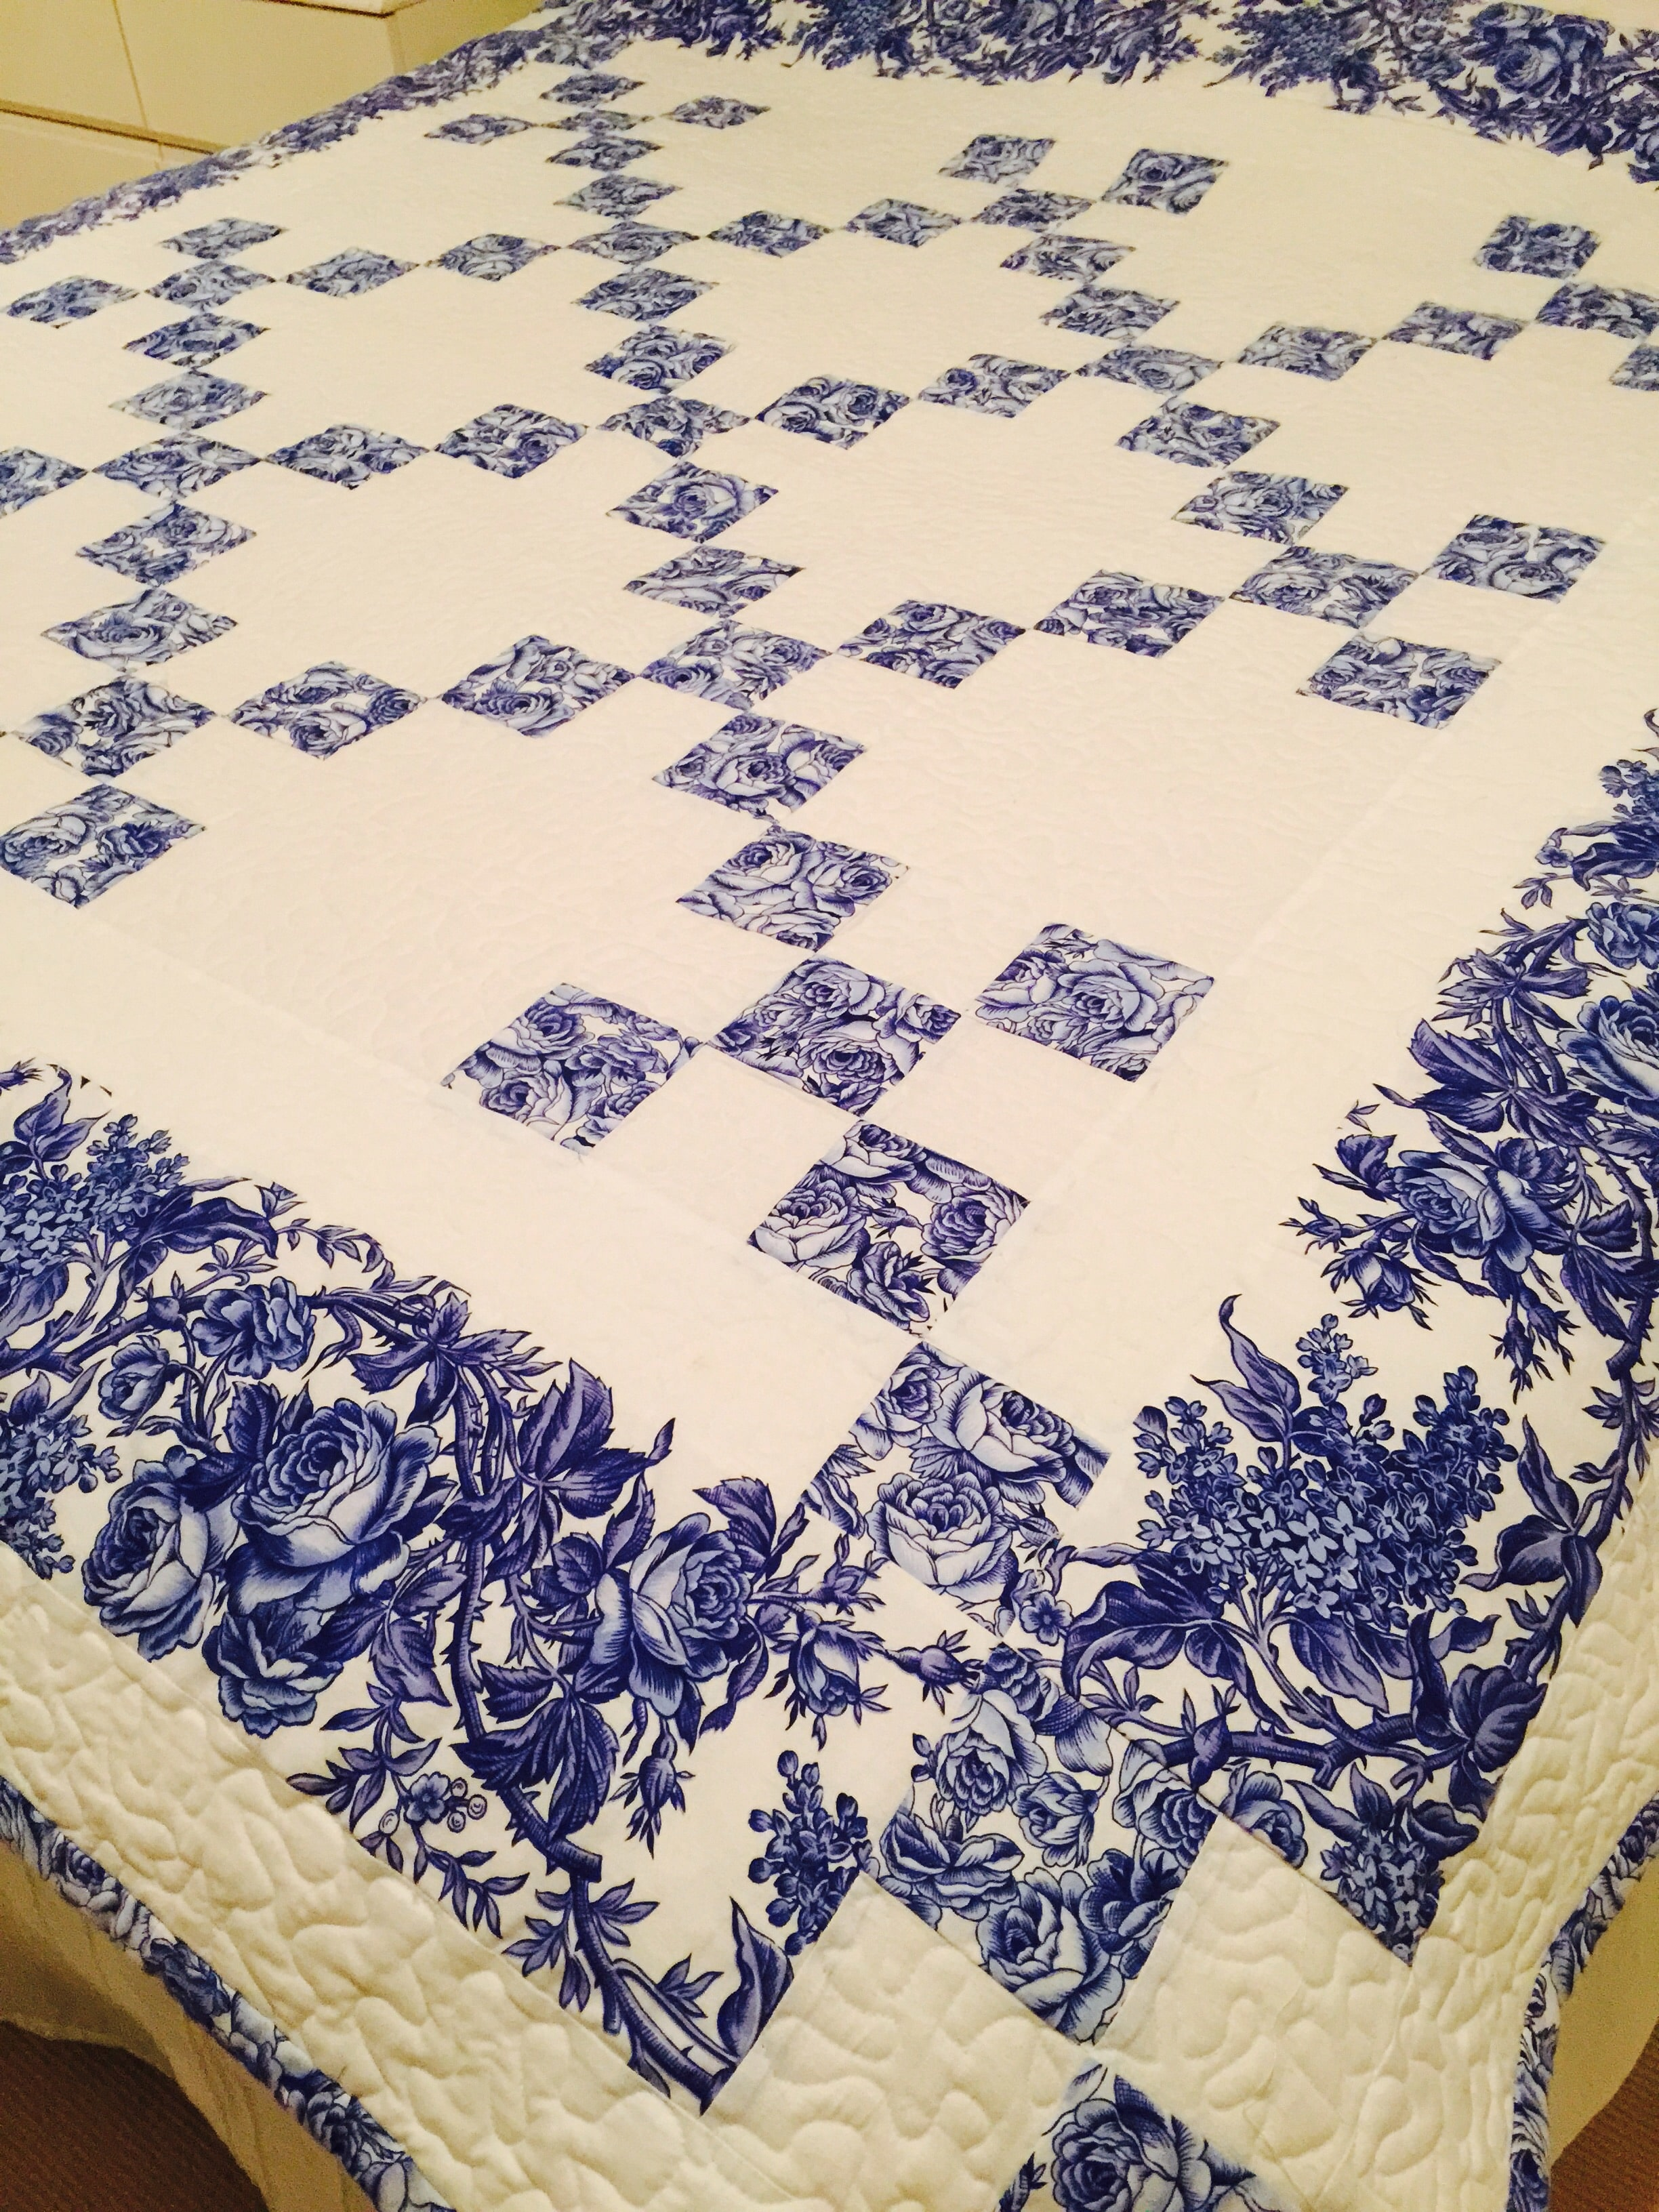 Delft Blue Chaining Nine Patch And Pattern Archives